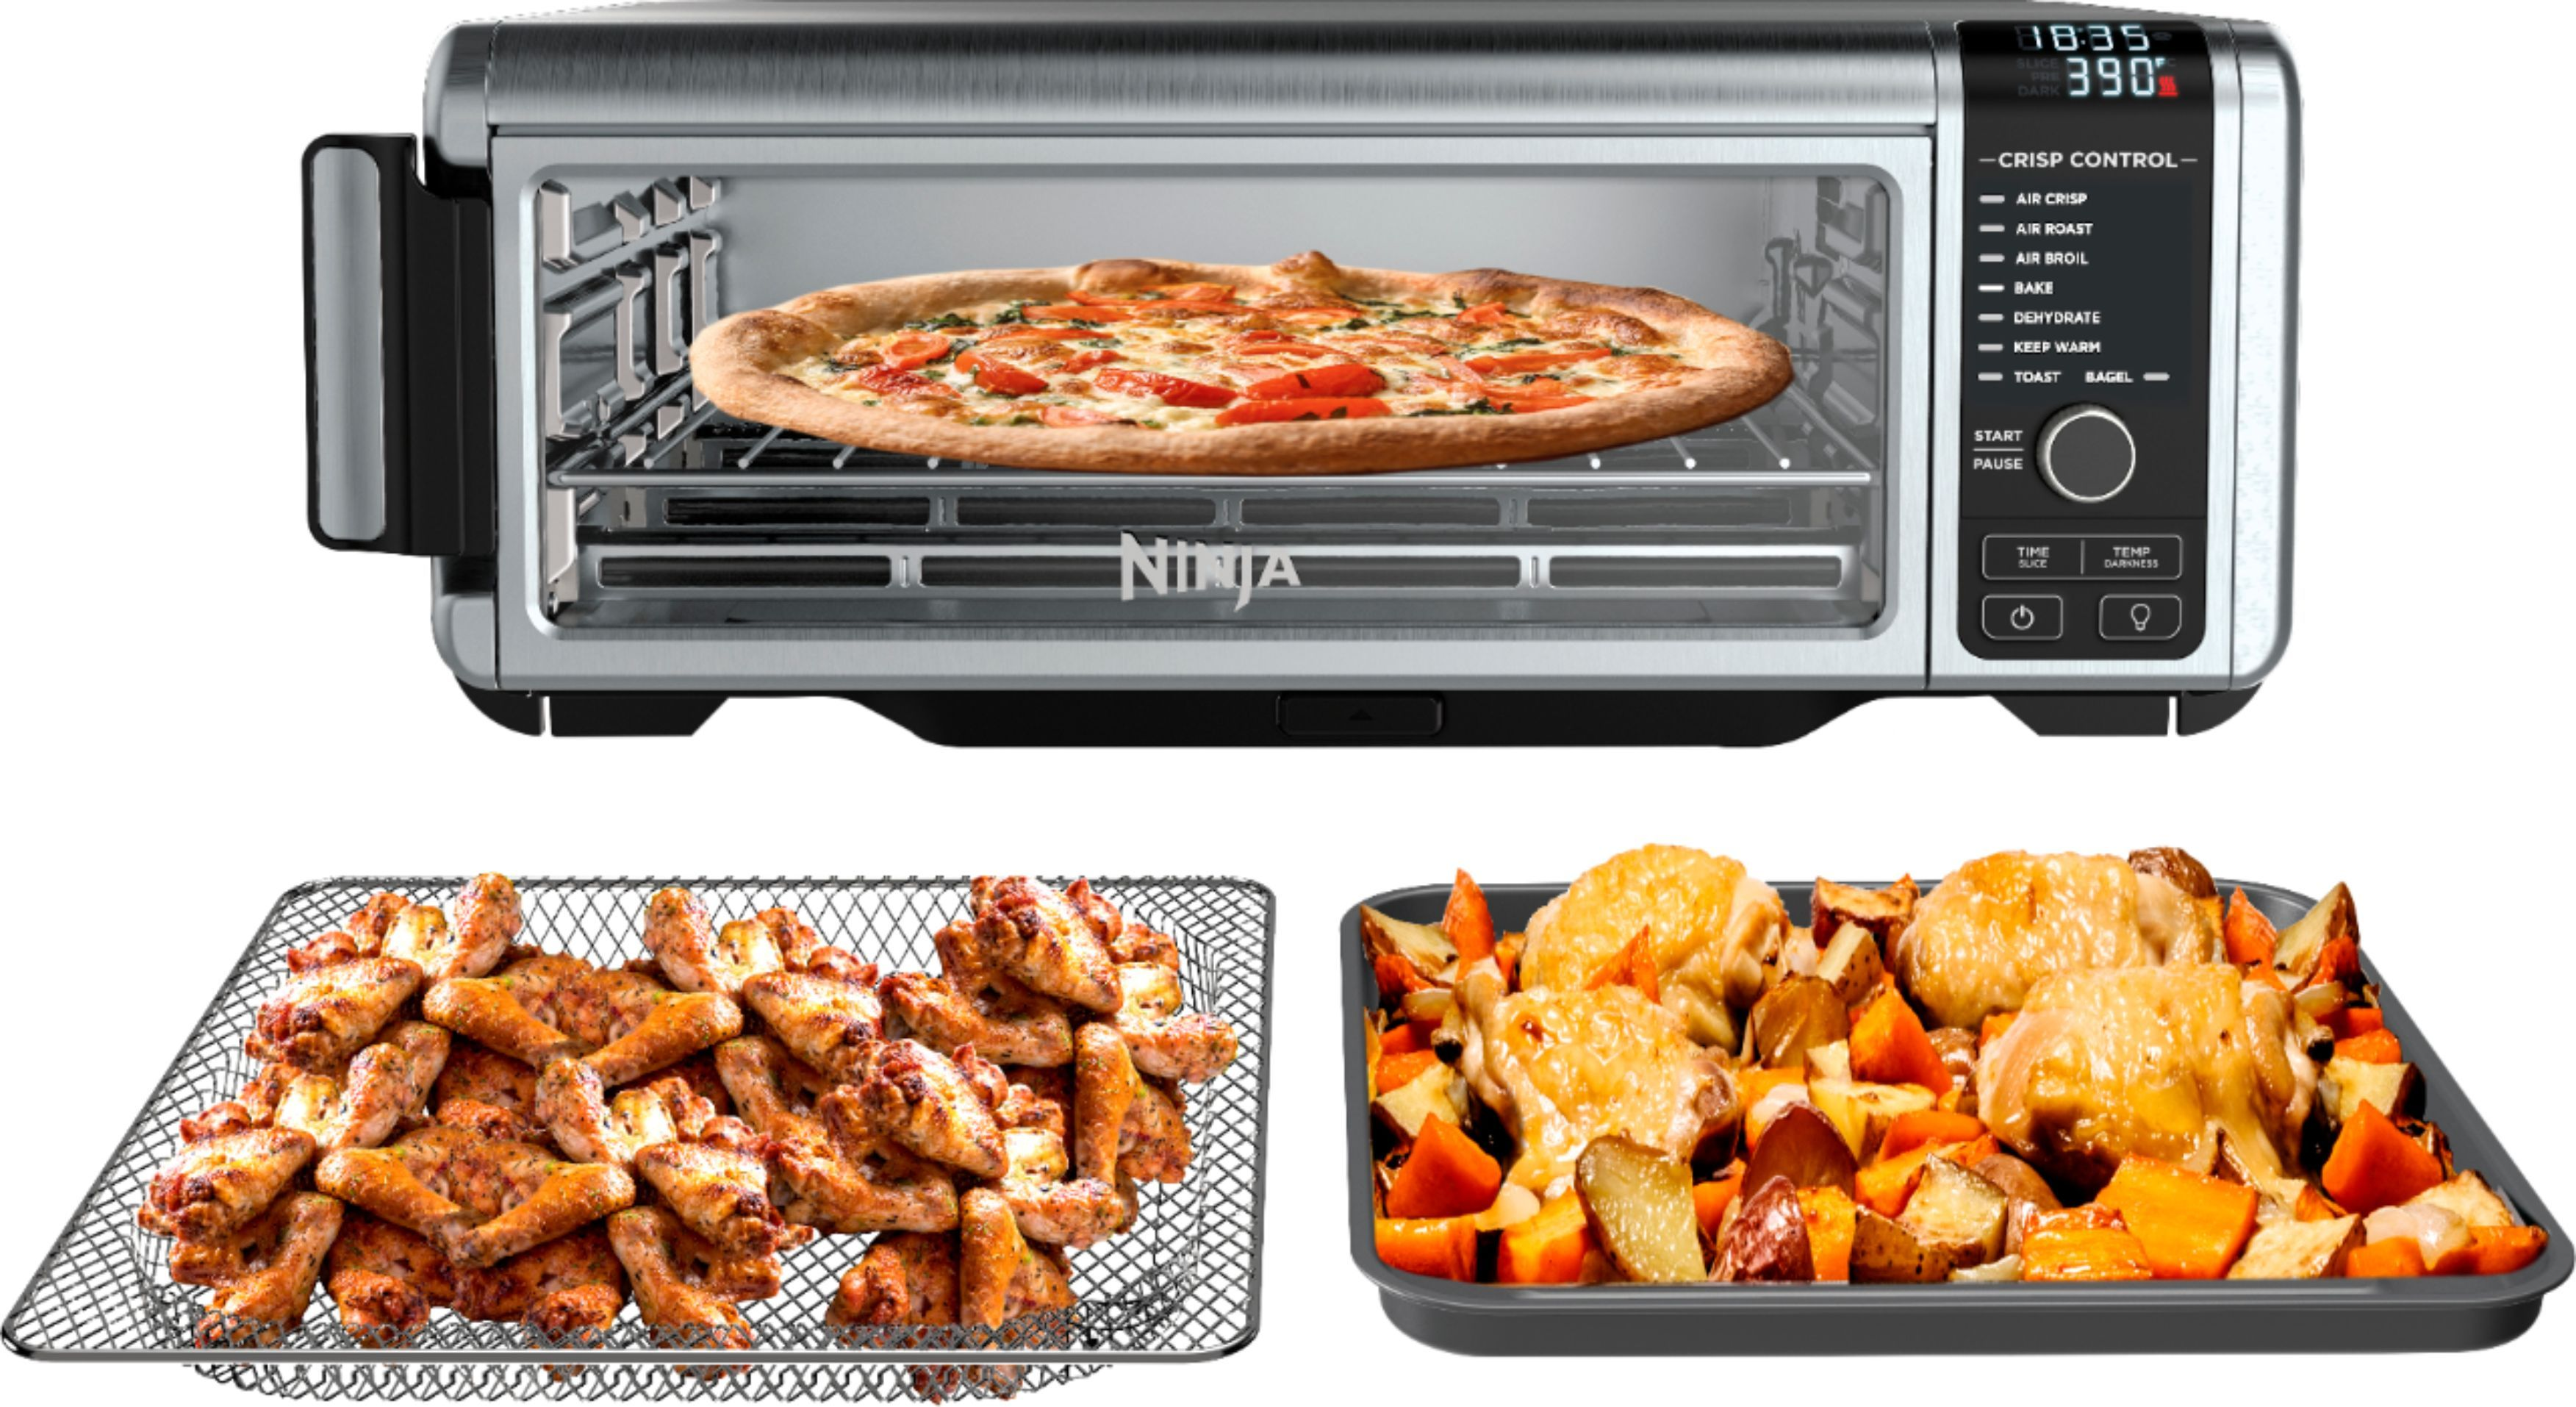 Shop Ninja Toaster Oven with Air Fryer Stainless Steel